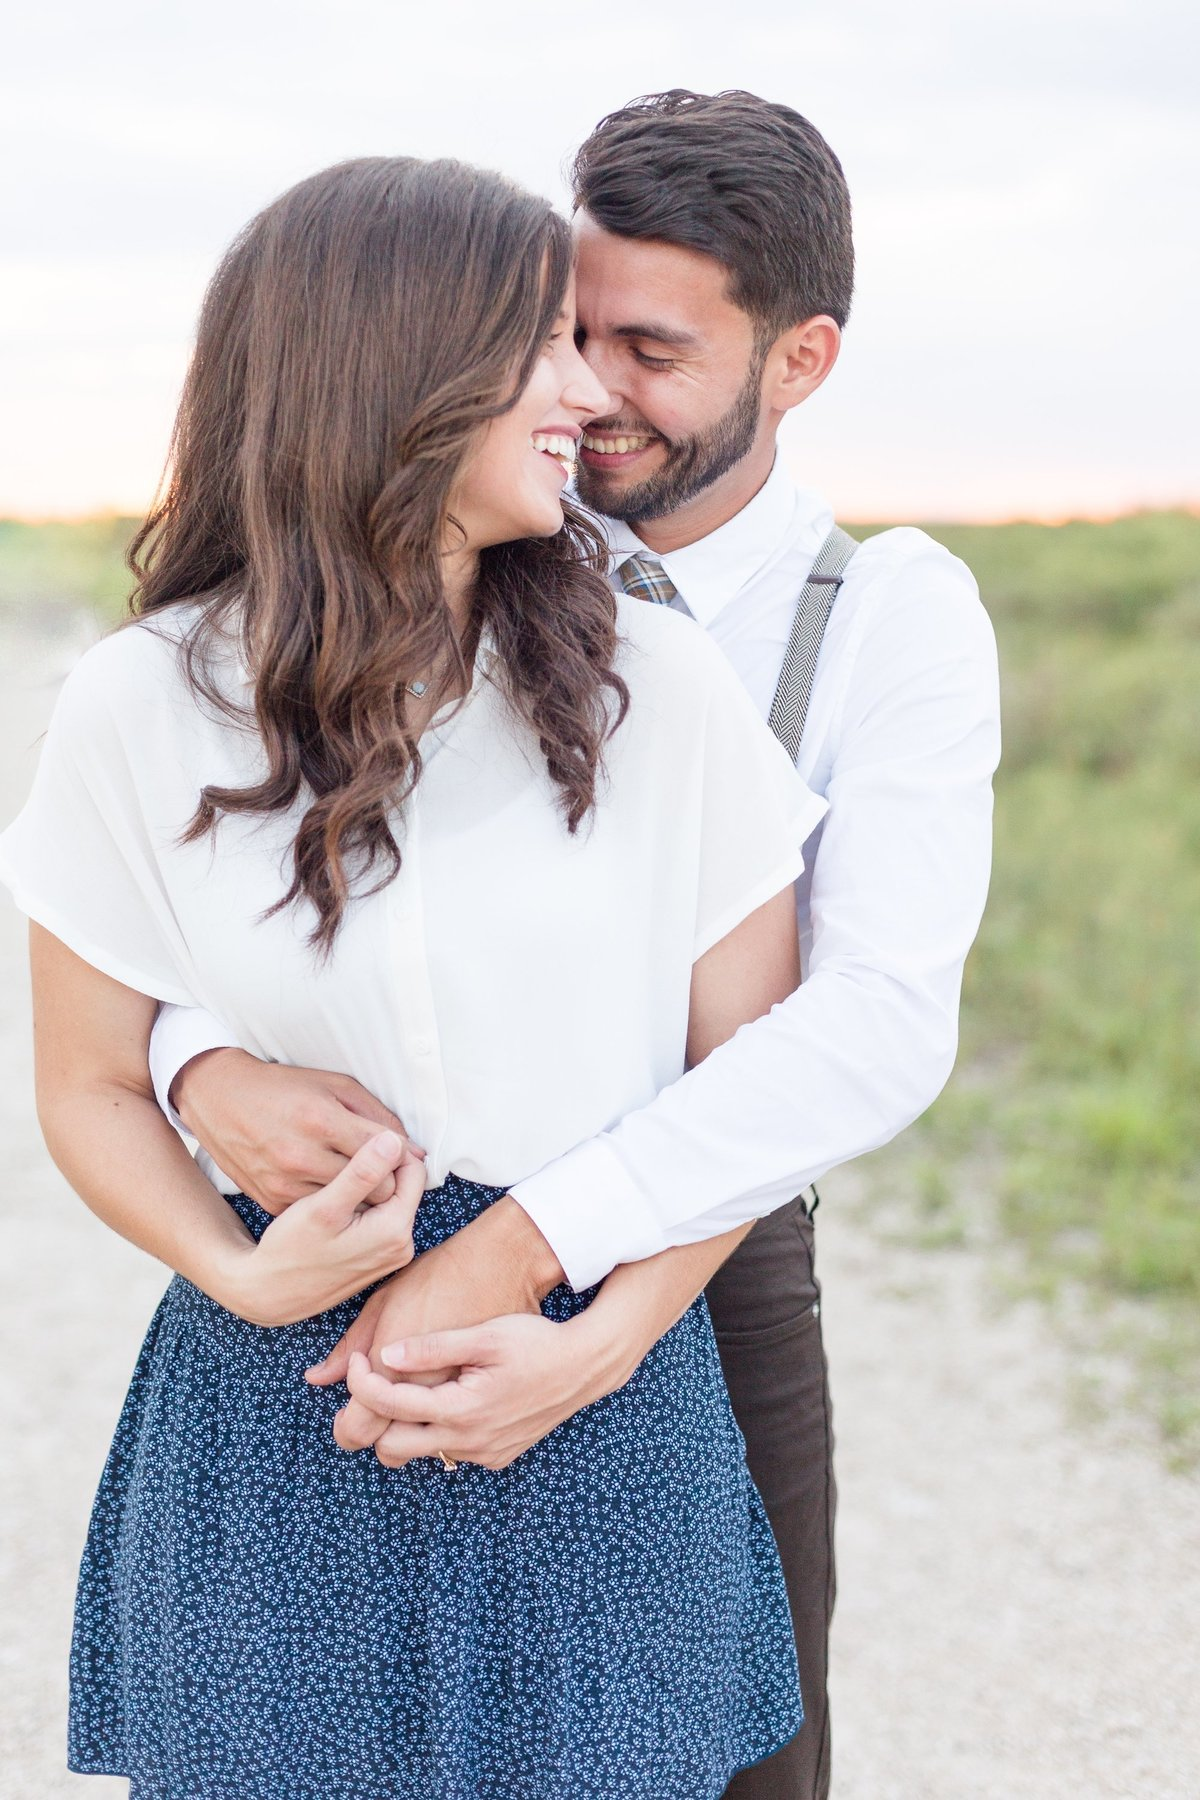 everglades-fort-lauderdale-florida-engagement-Chris-and-Micaela-photography-16